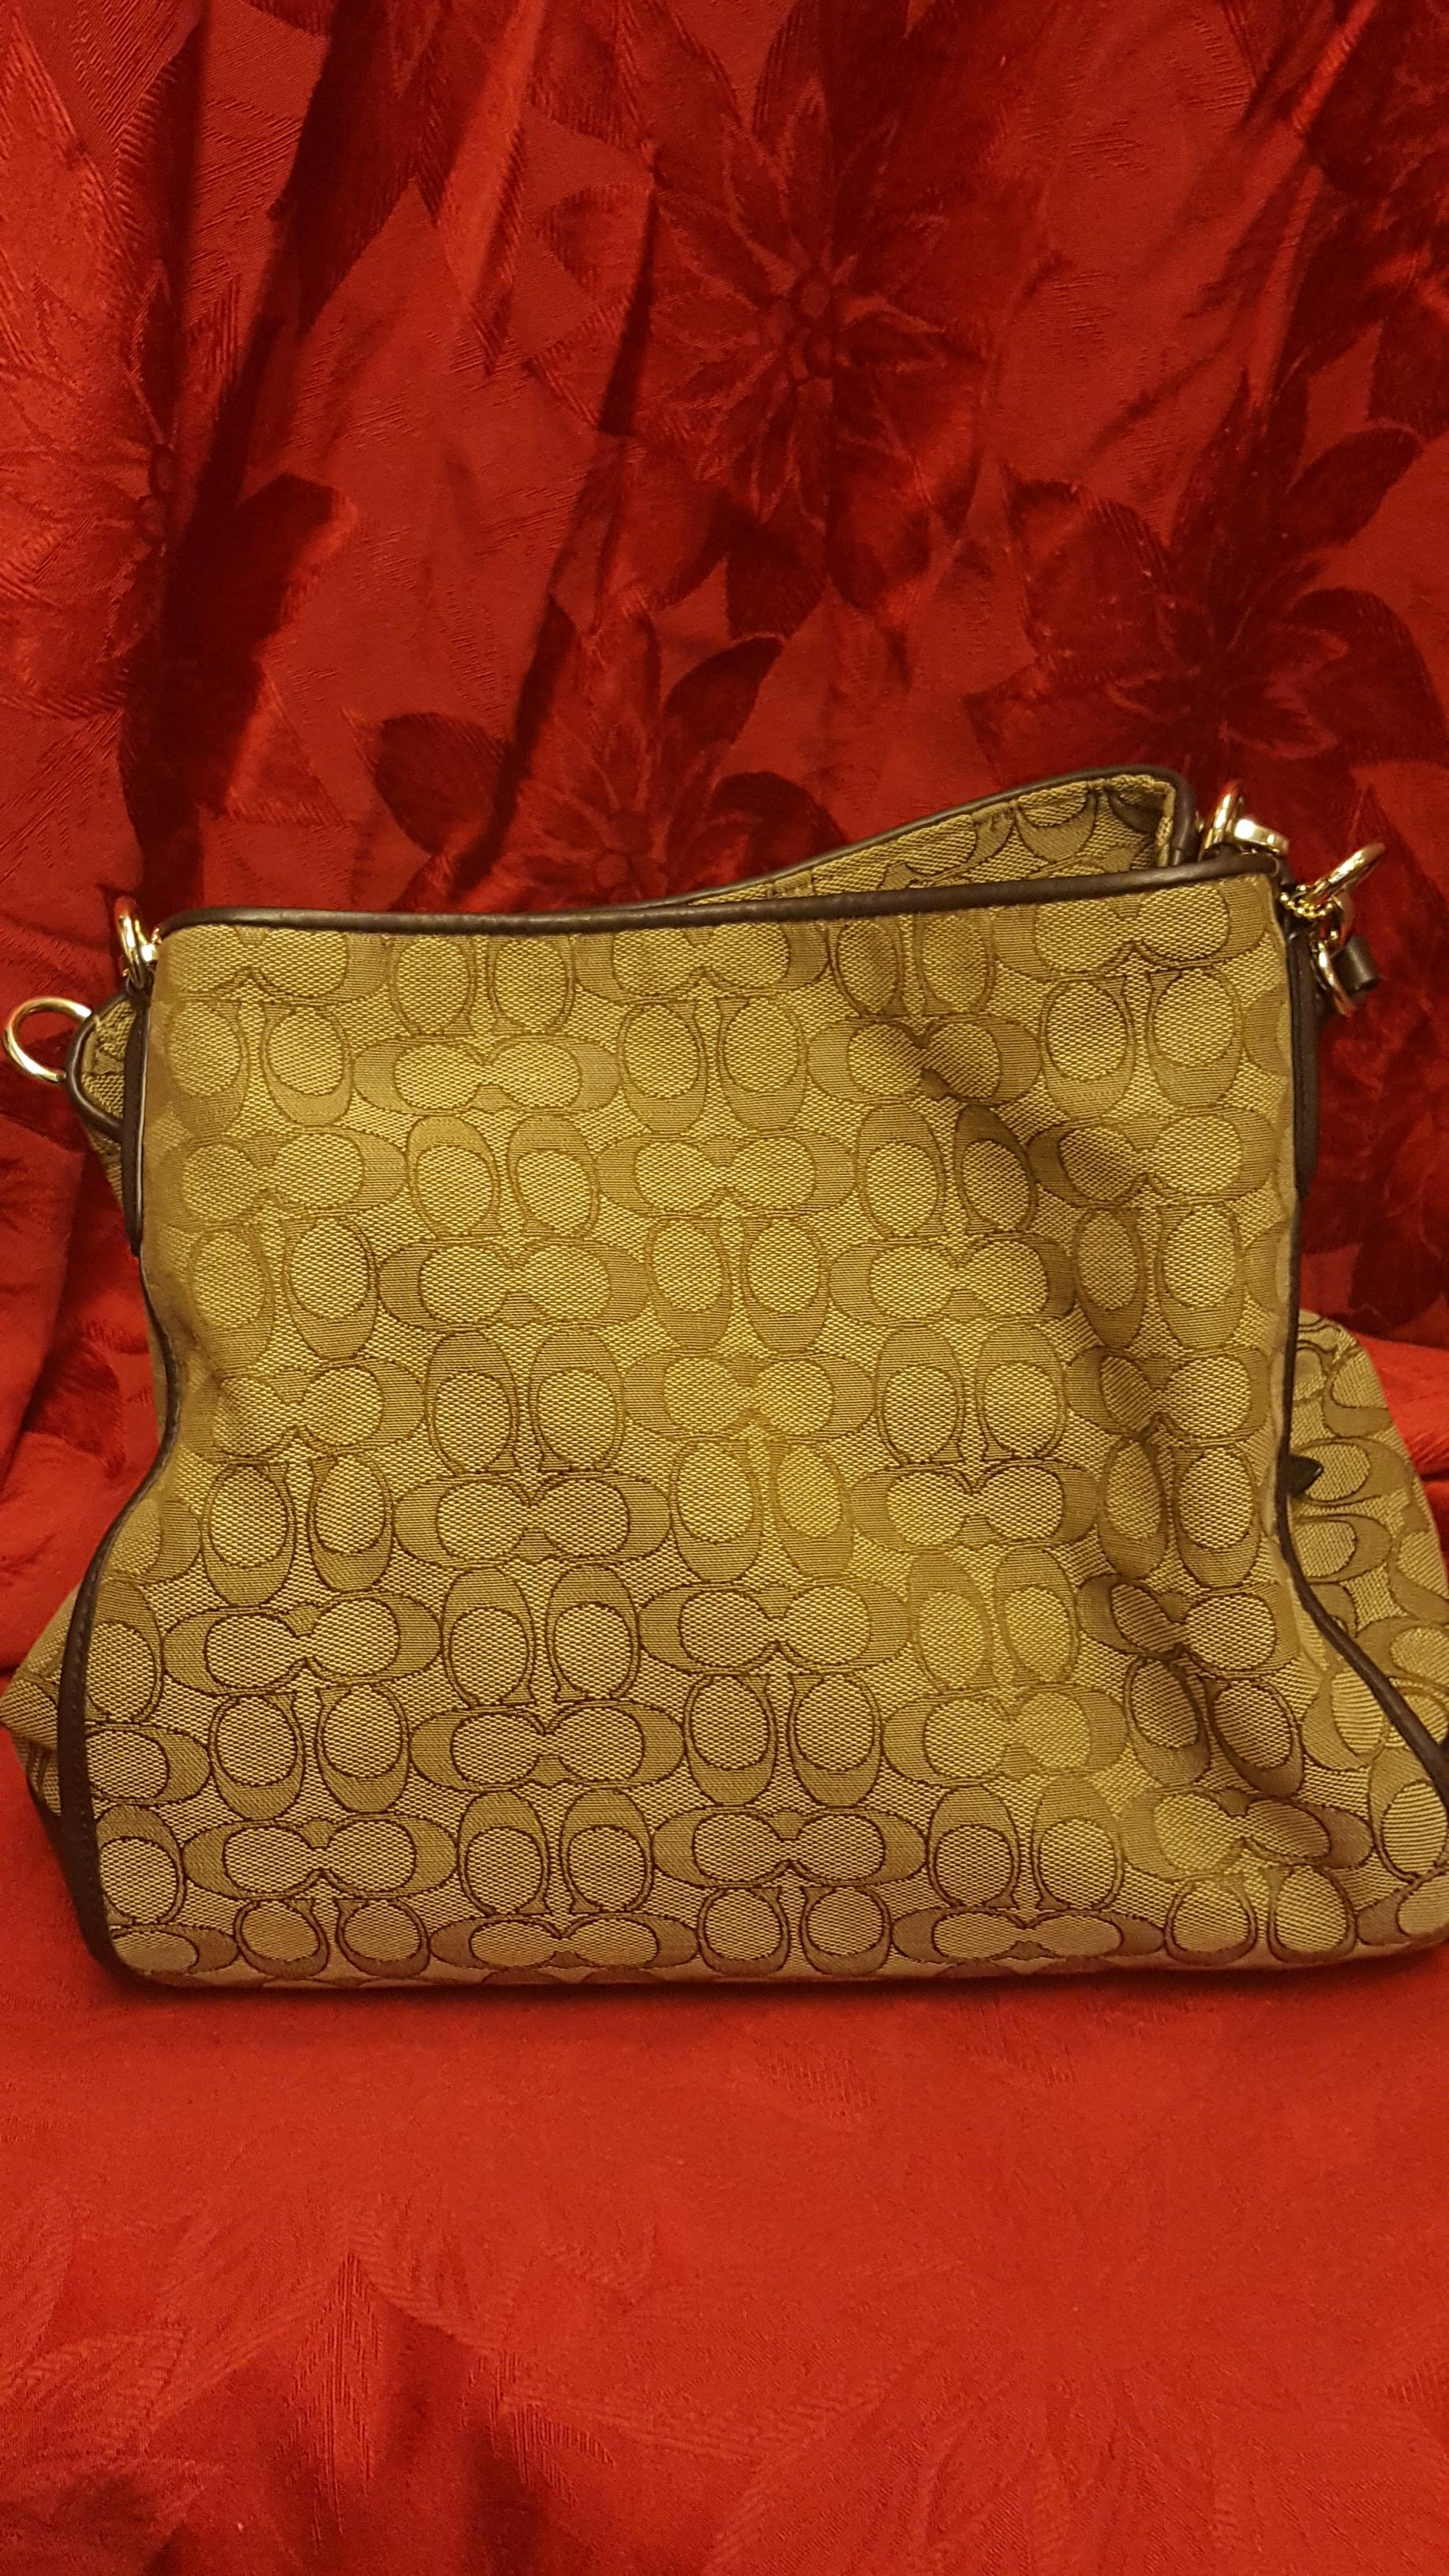 f90c22dbd949 ... wholesale coach edie brown jacquard canvas leather shoulder bag tradesy  31d7f 81636 ...